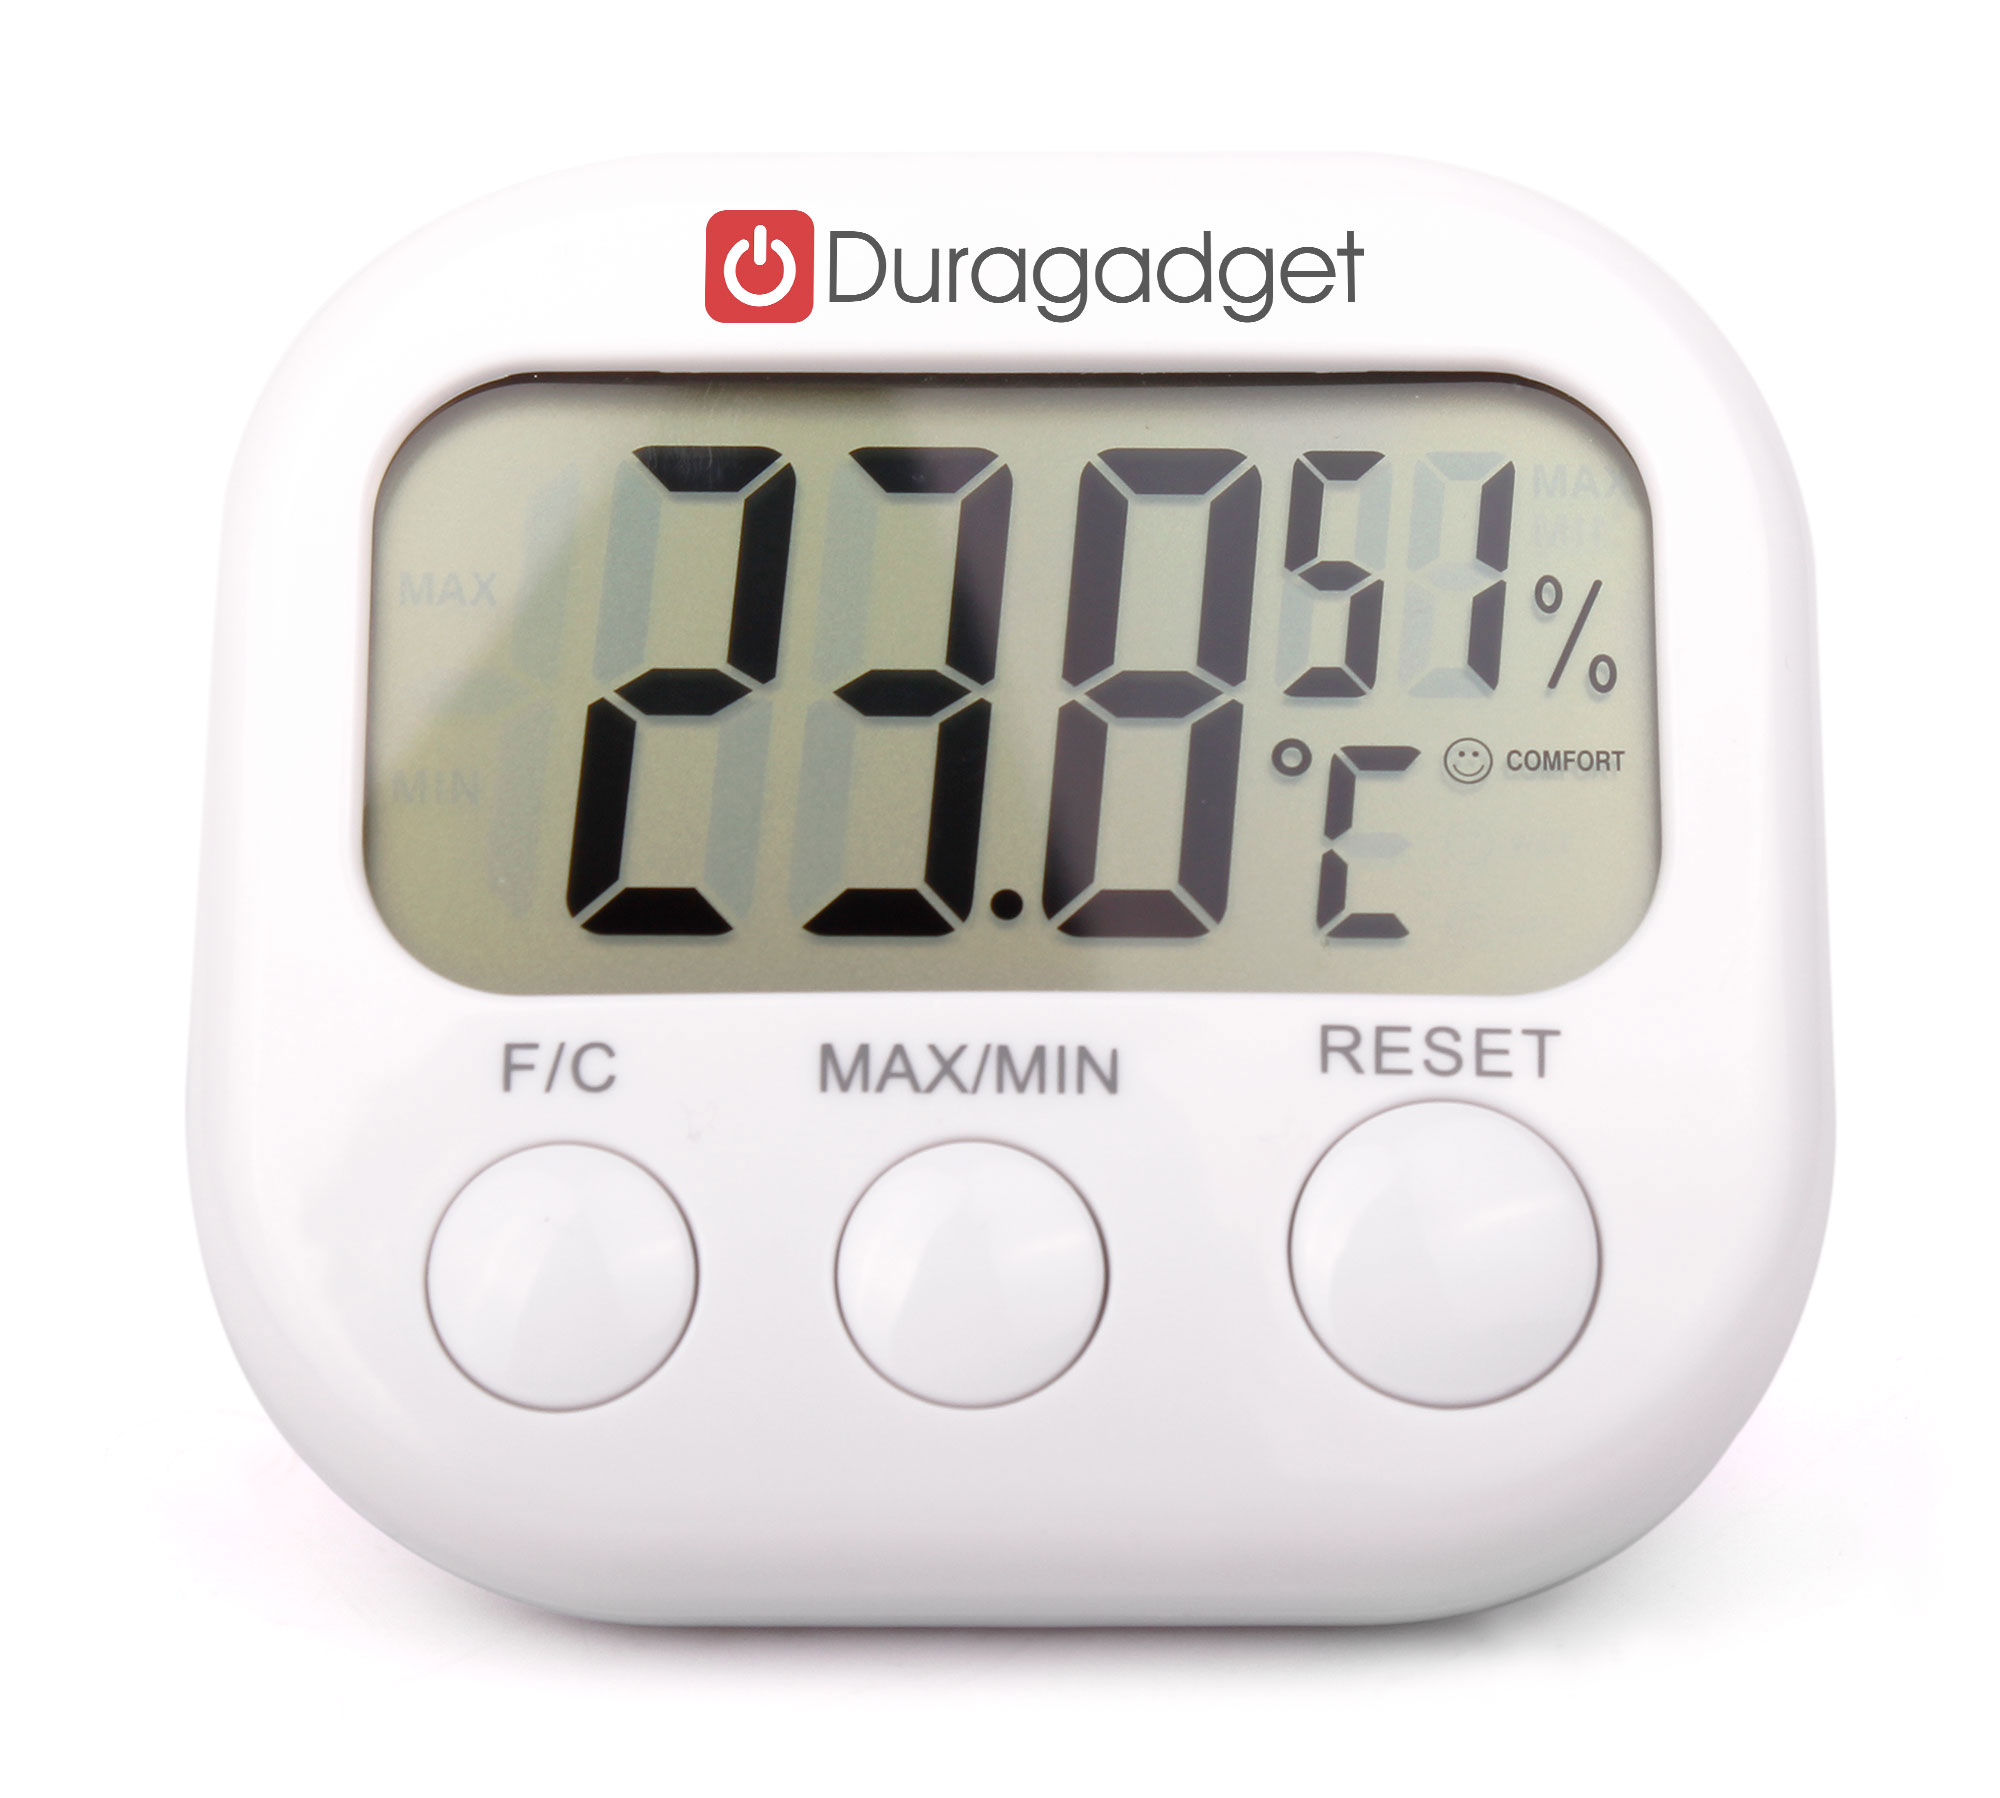 New Indoor Lcd Room Temperature Thermometergauge With. Closet Decor. Coastal Themed Home Decor. Living Room Ideas Modern. Map Decor. Wall Decorations Diy. Game Room Couch. Black And White Decorating Ideas. Target Home Decor